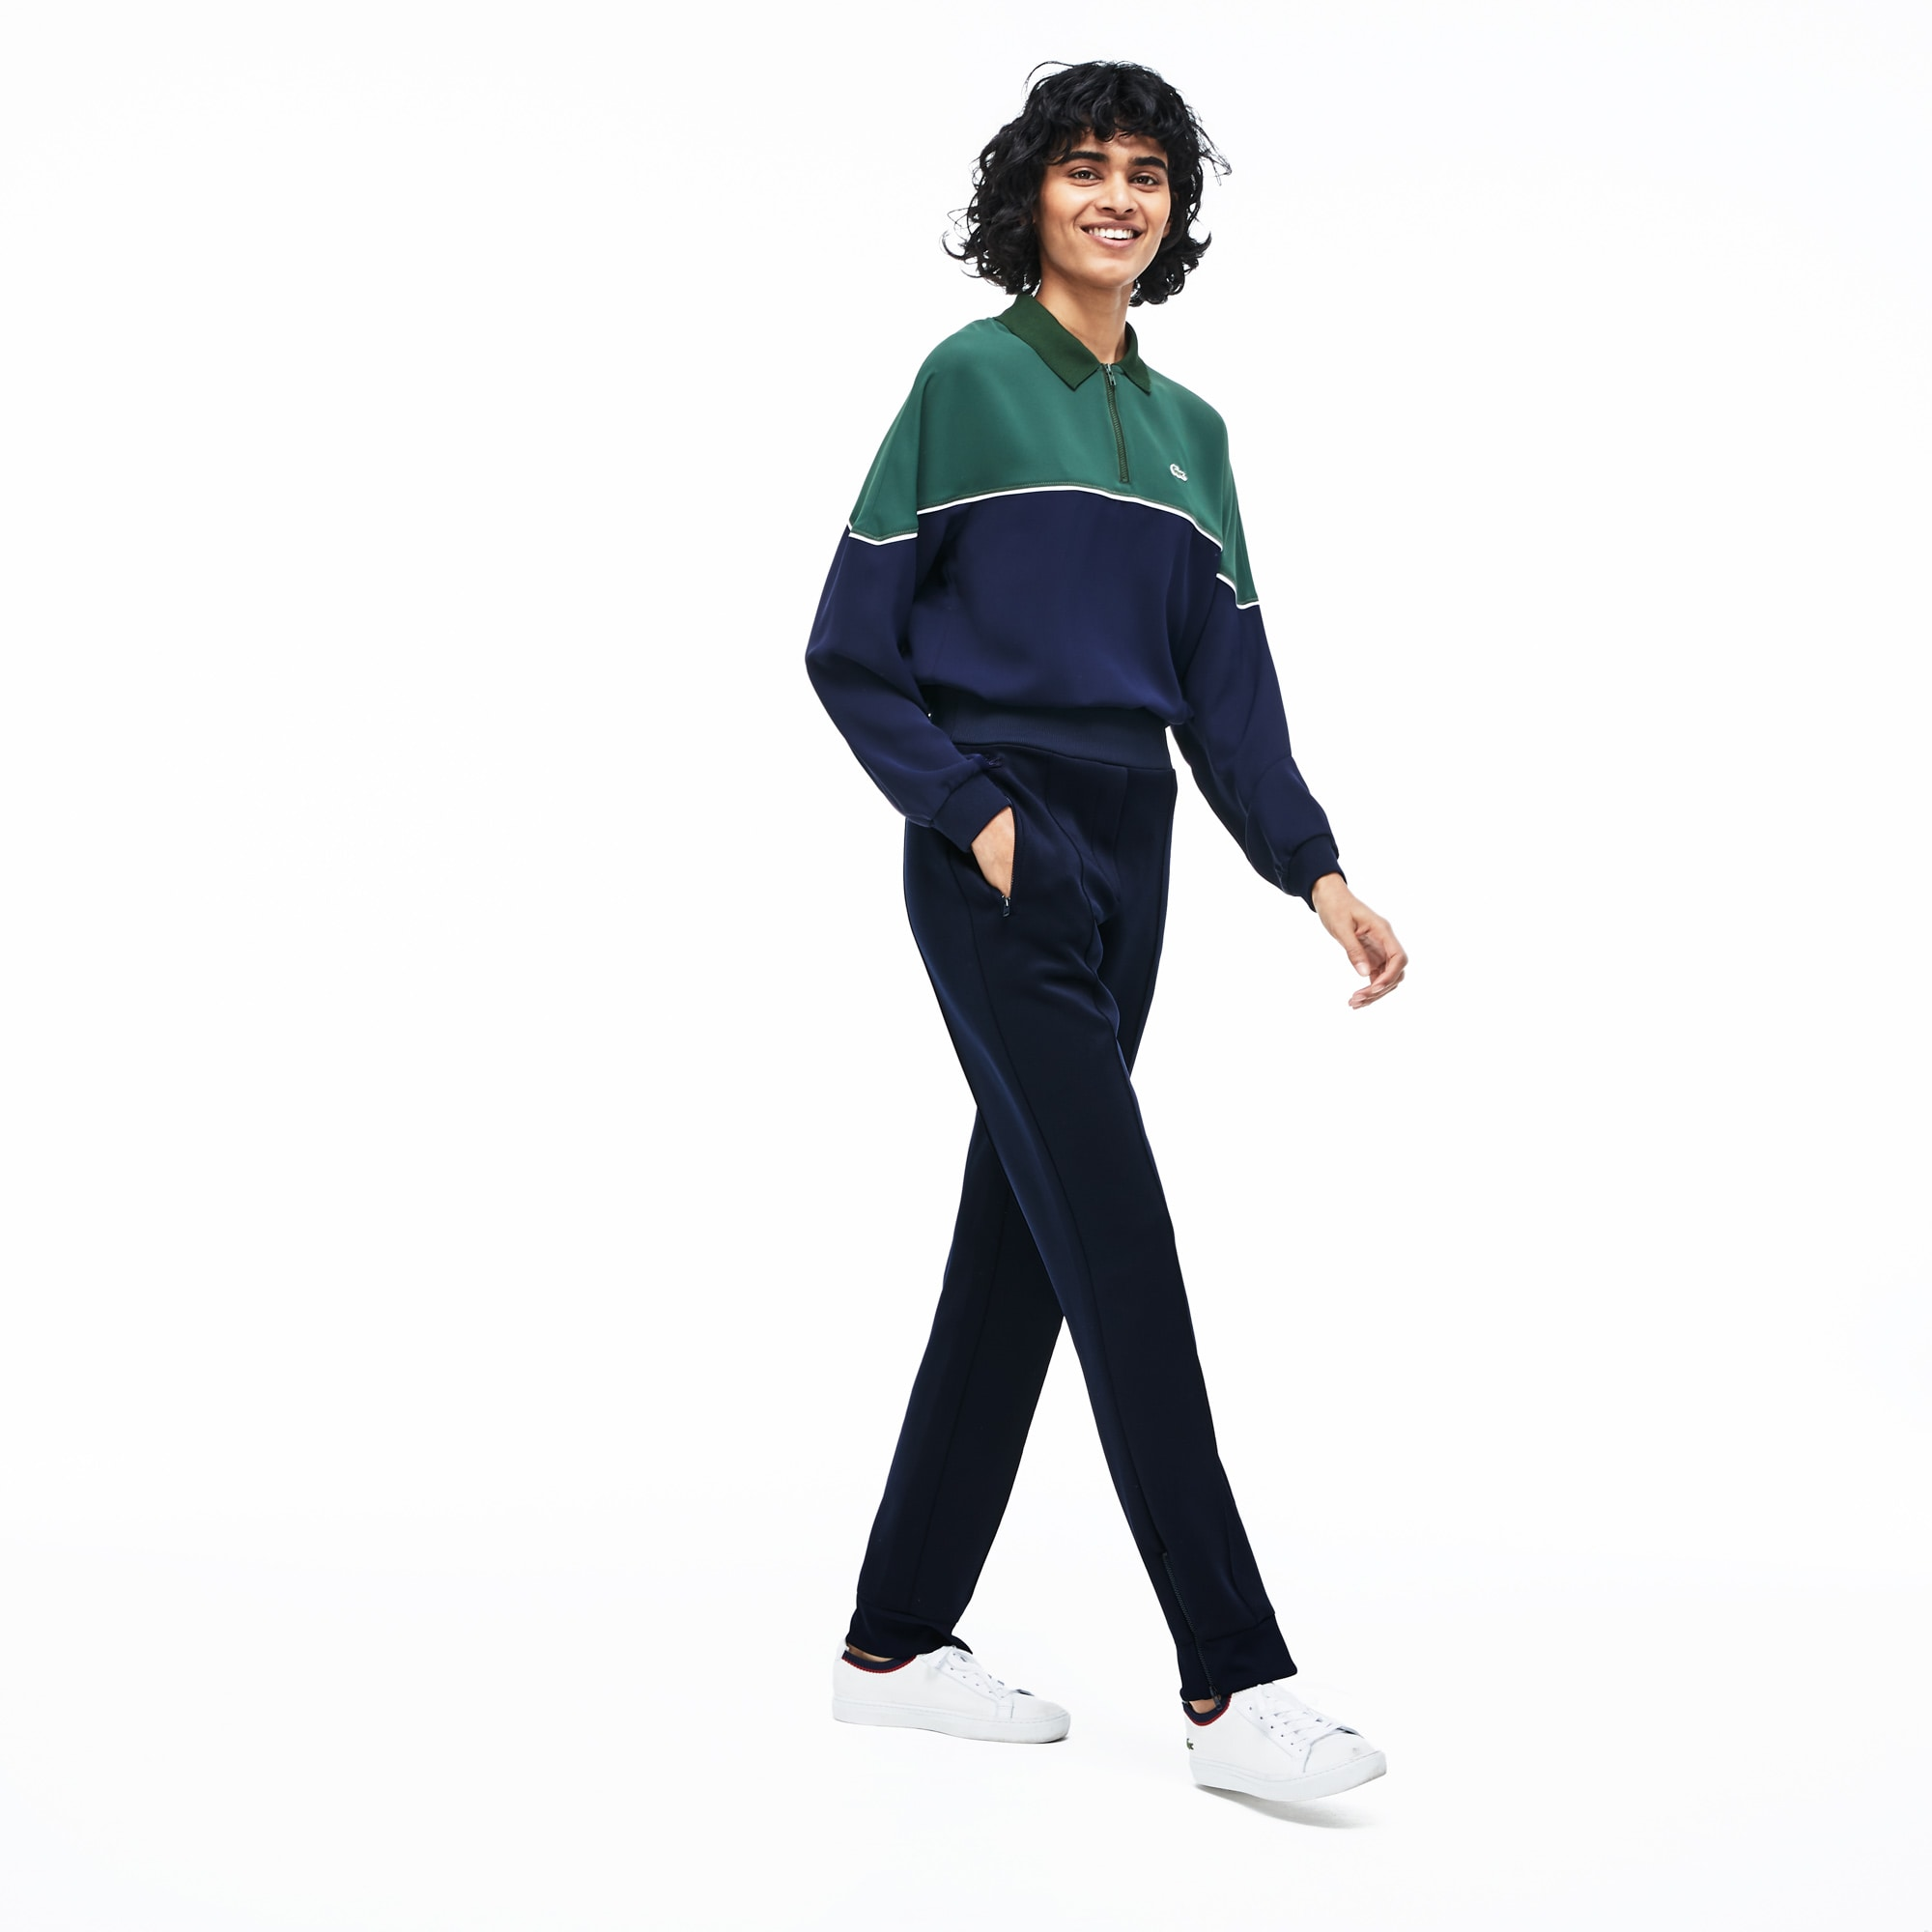 963168dc13 Pants and Shorts | Women's Clothing | LACOSTE